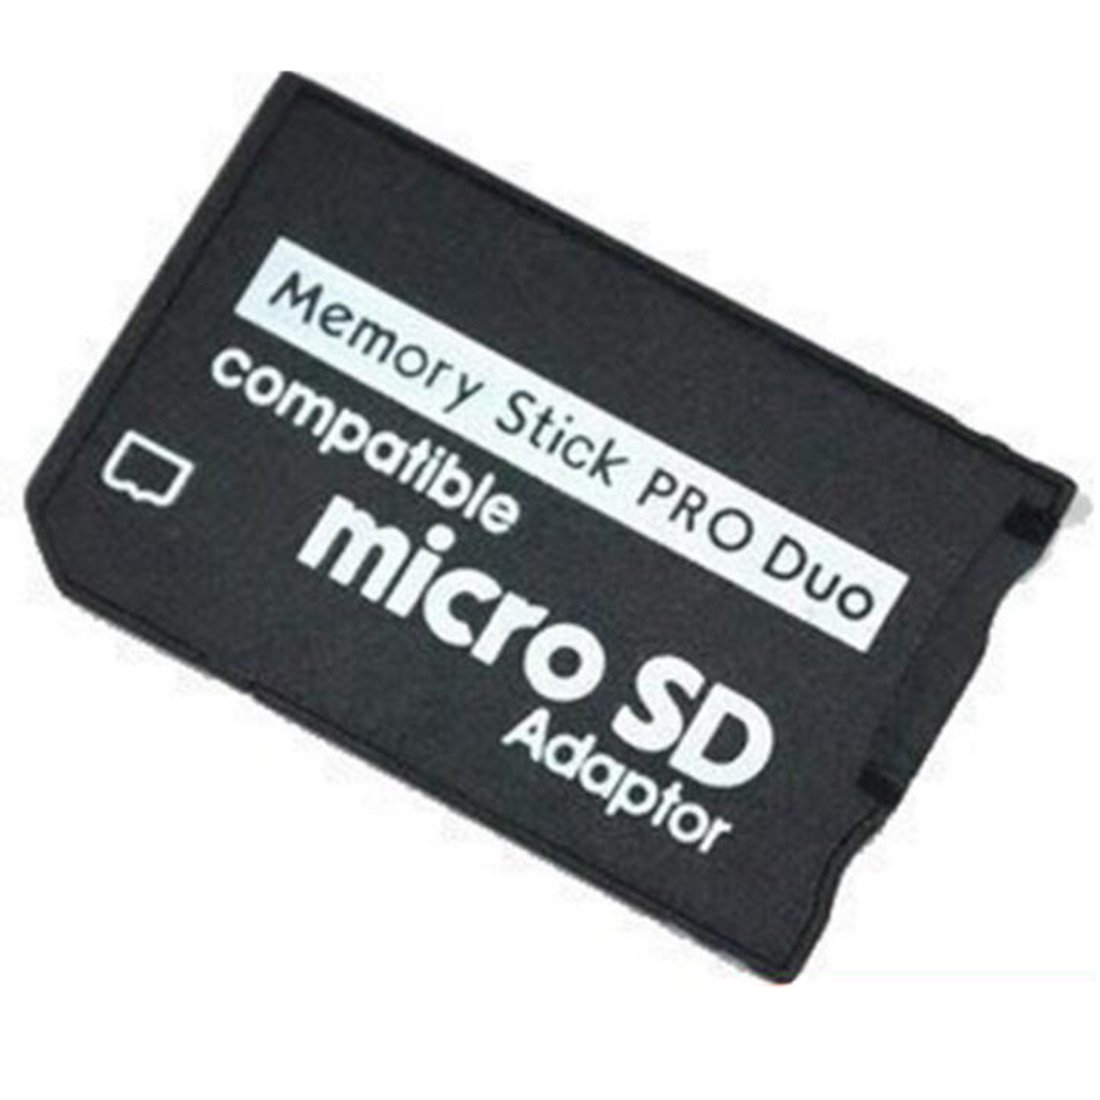 Amazon.com: Adaptador Micro SD a Memory Stick PRO Duo de ...